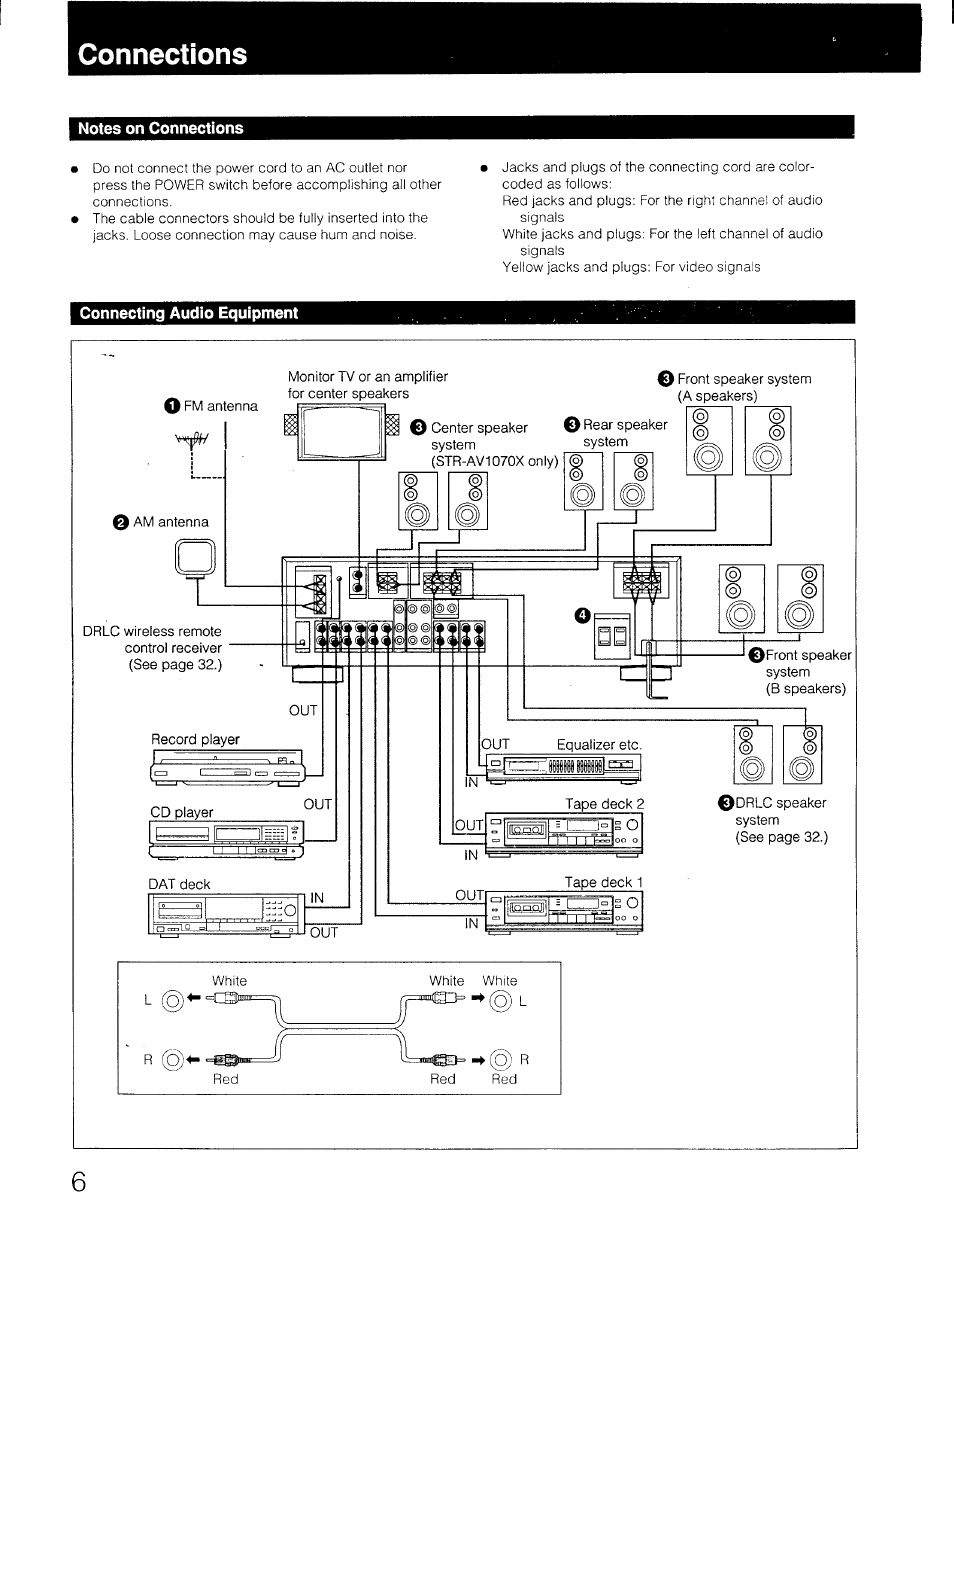 medium resolution of connections notes on connections connecting audio equipment sony str av1070x user manual page 6 43